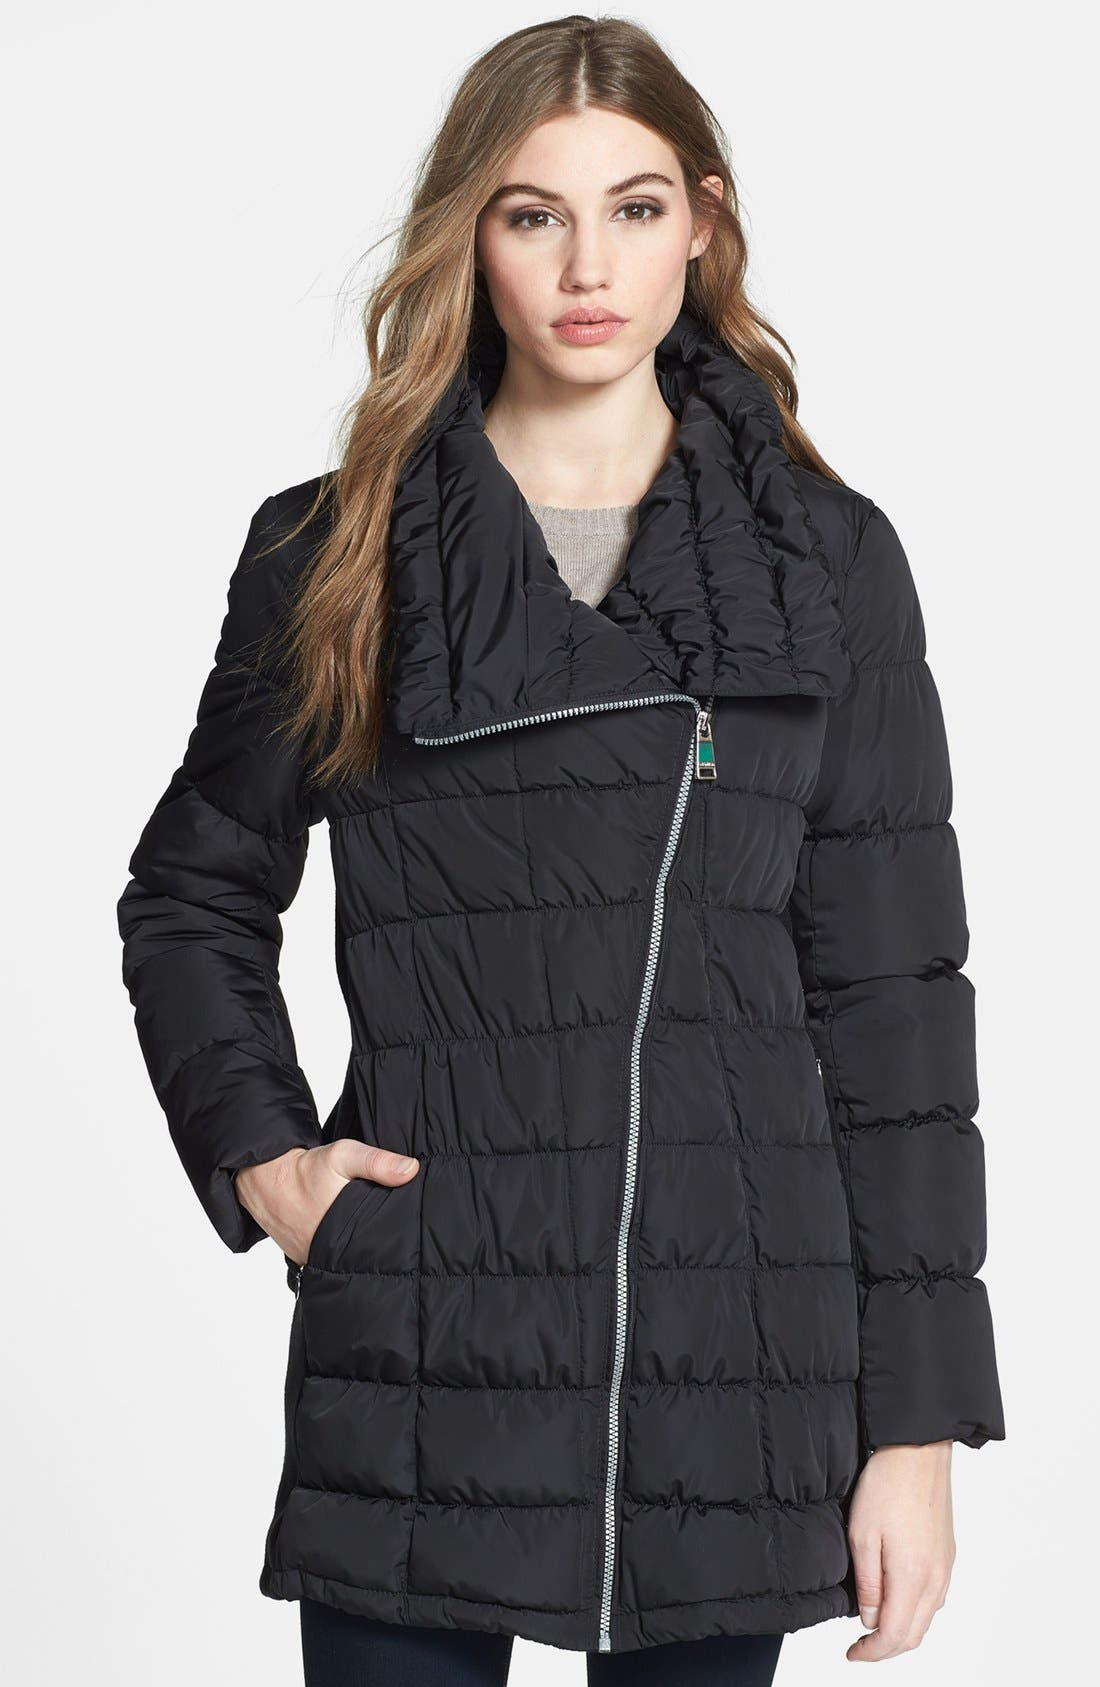 Alternate Image 1 Selected - Calvin Klein Asymmetrical Quilted Jacket